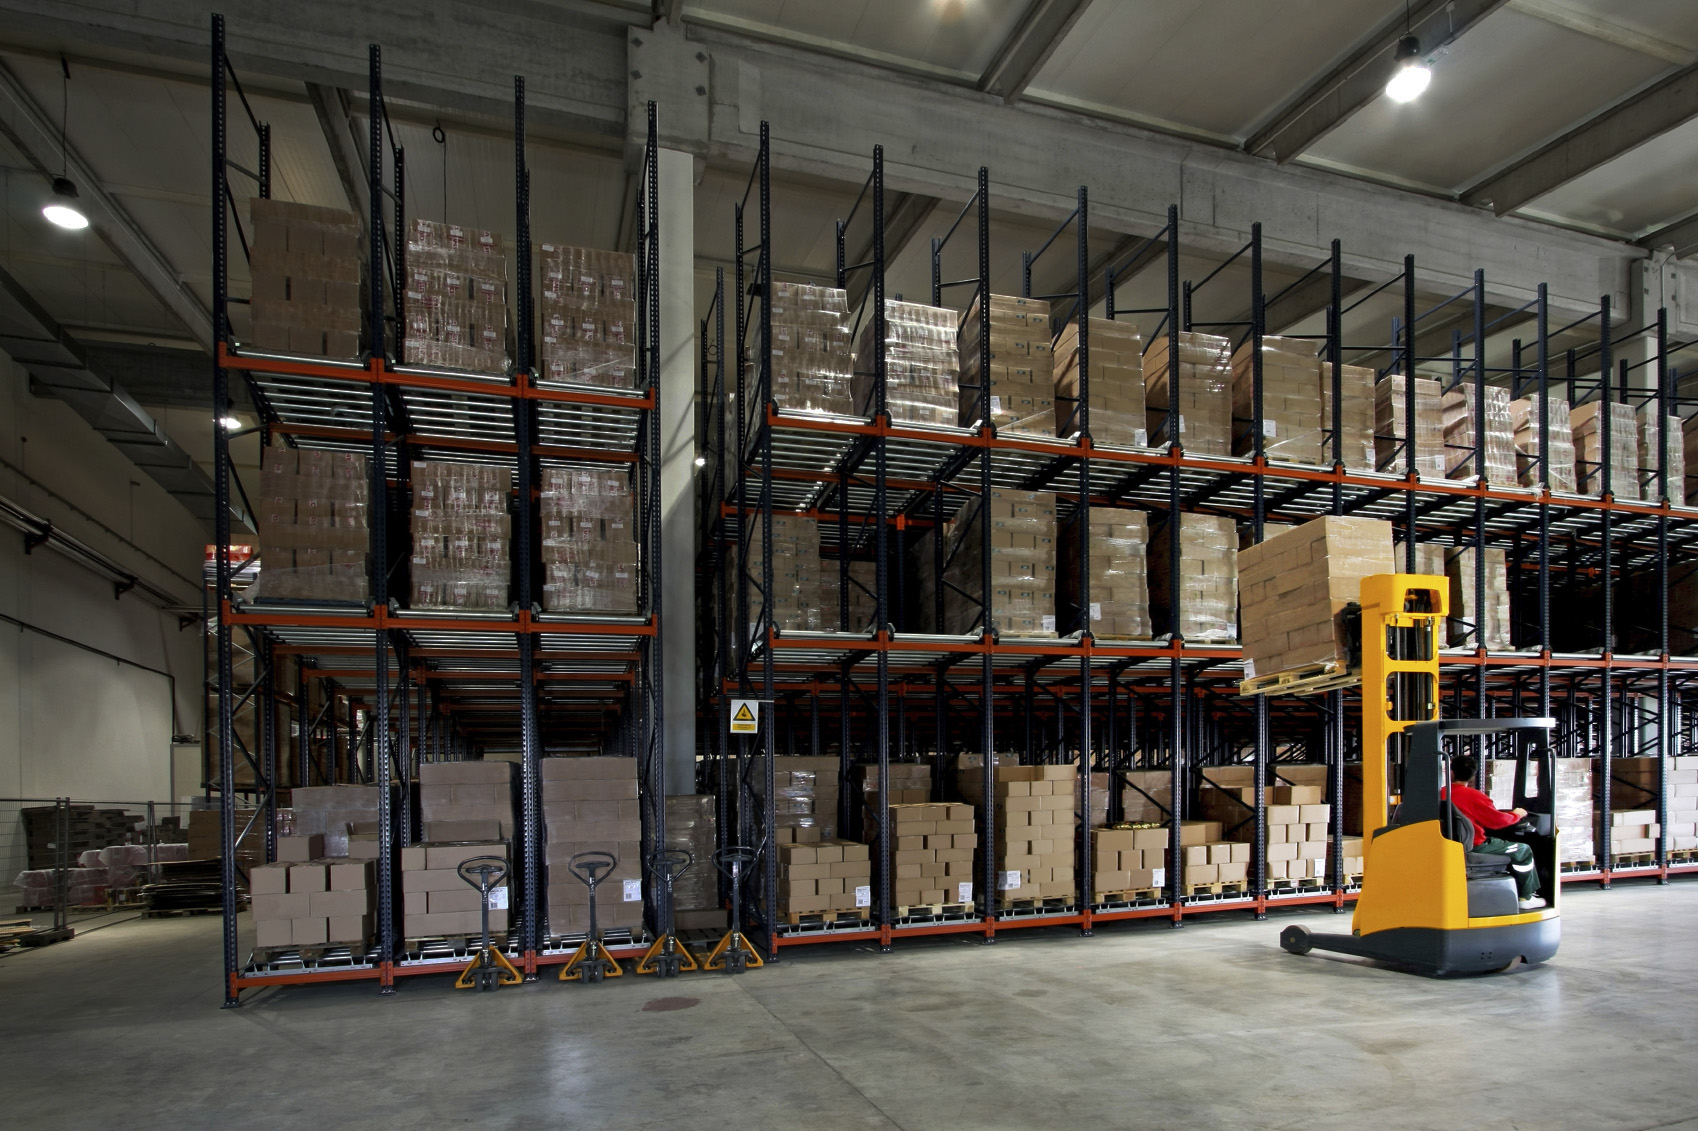 Warehouse distribution logistics